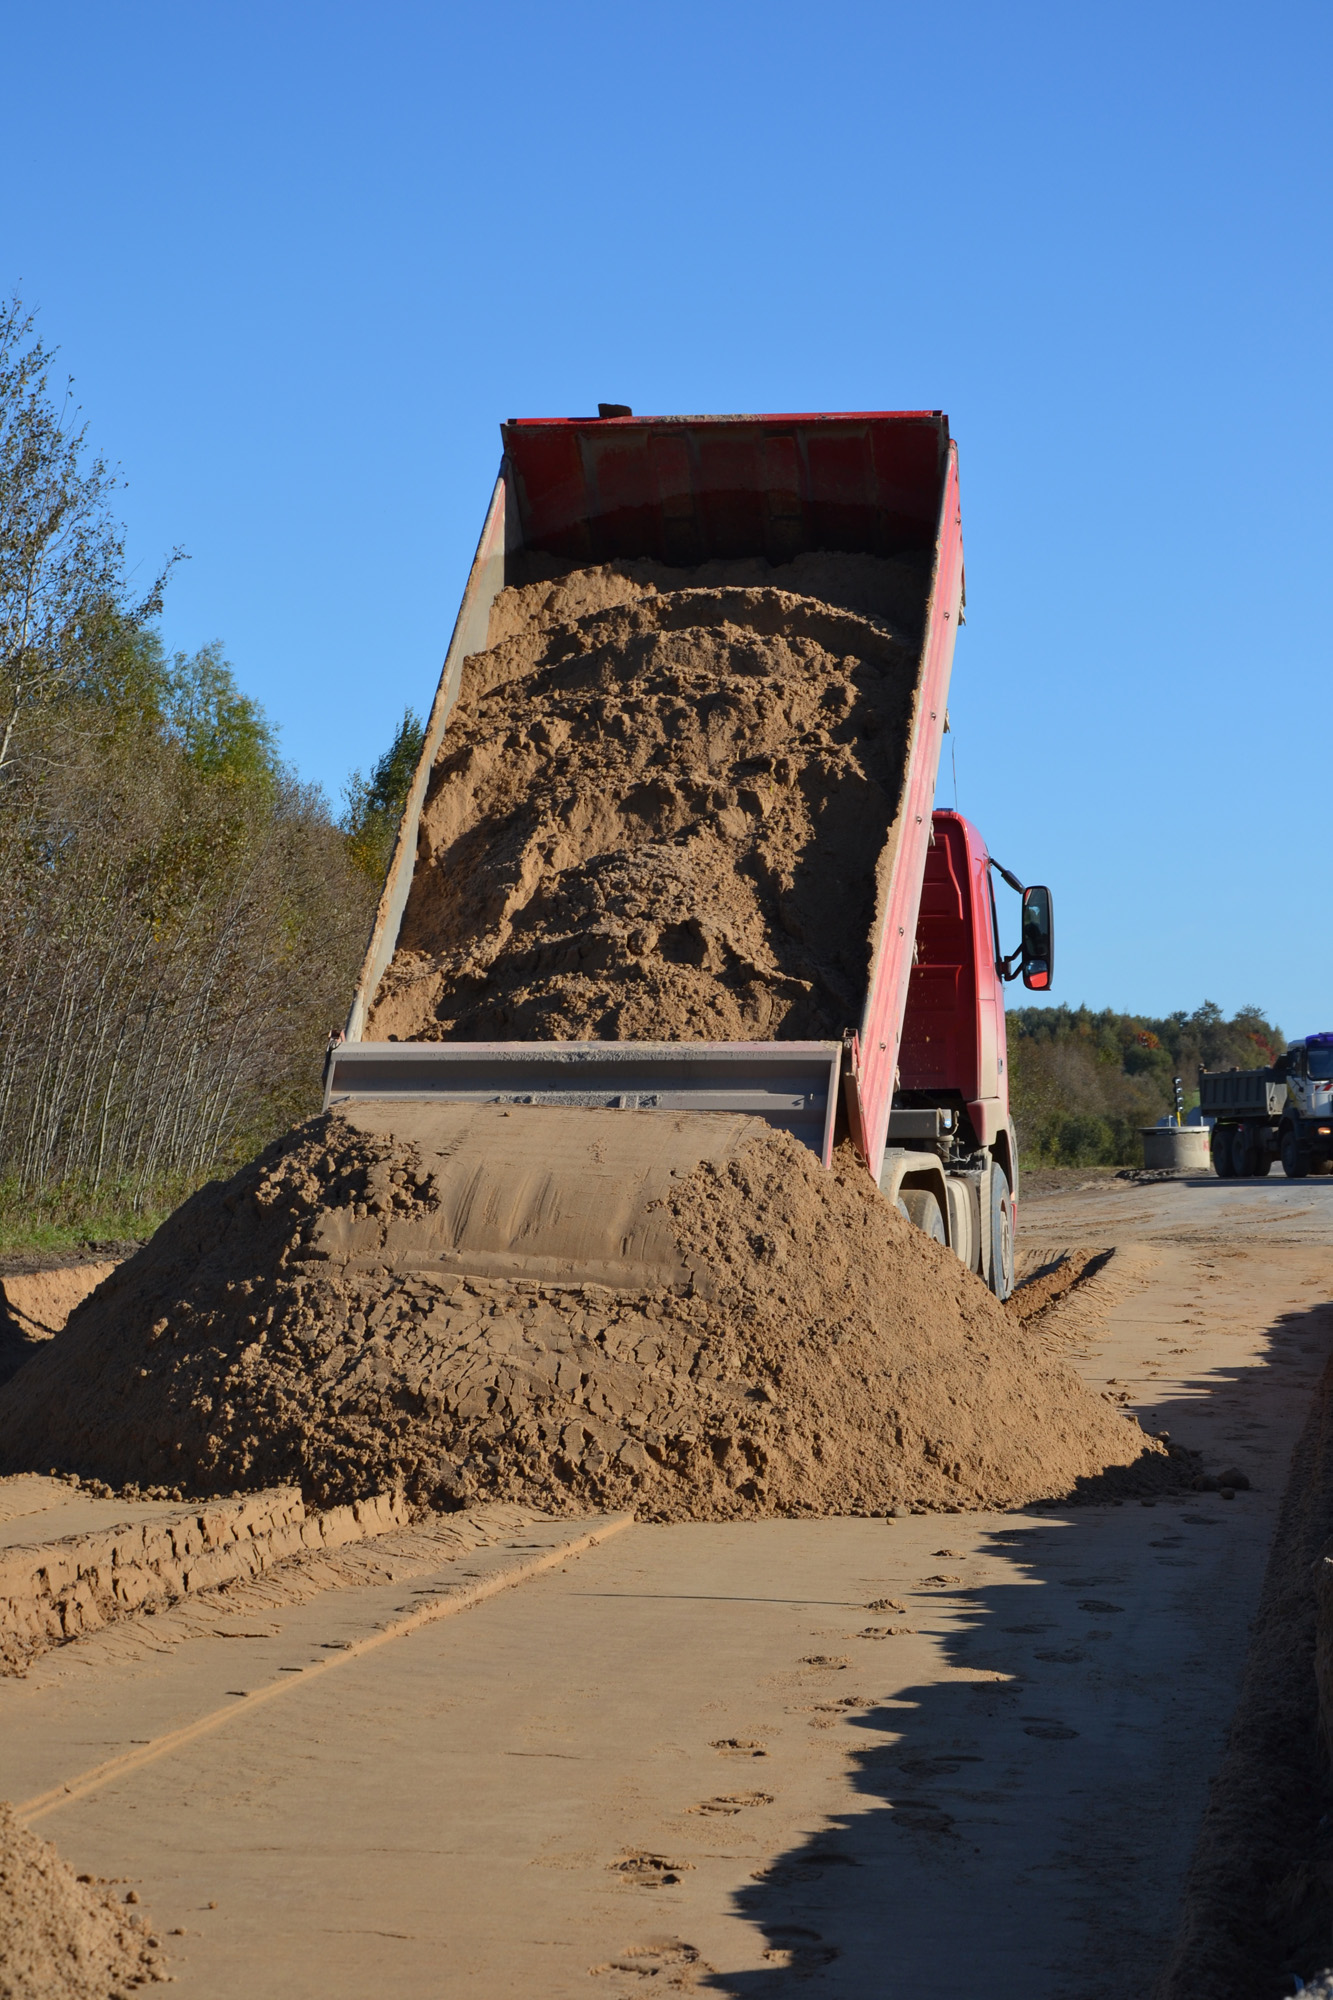 Sand pile and truck photo